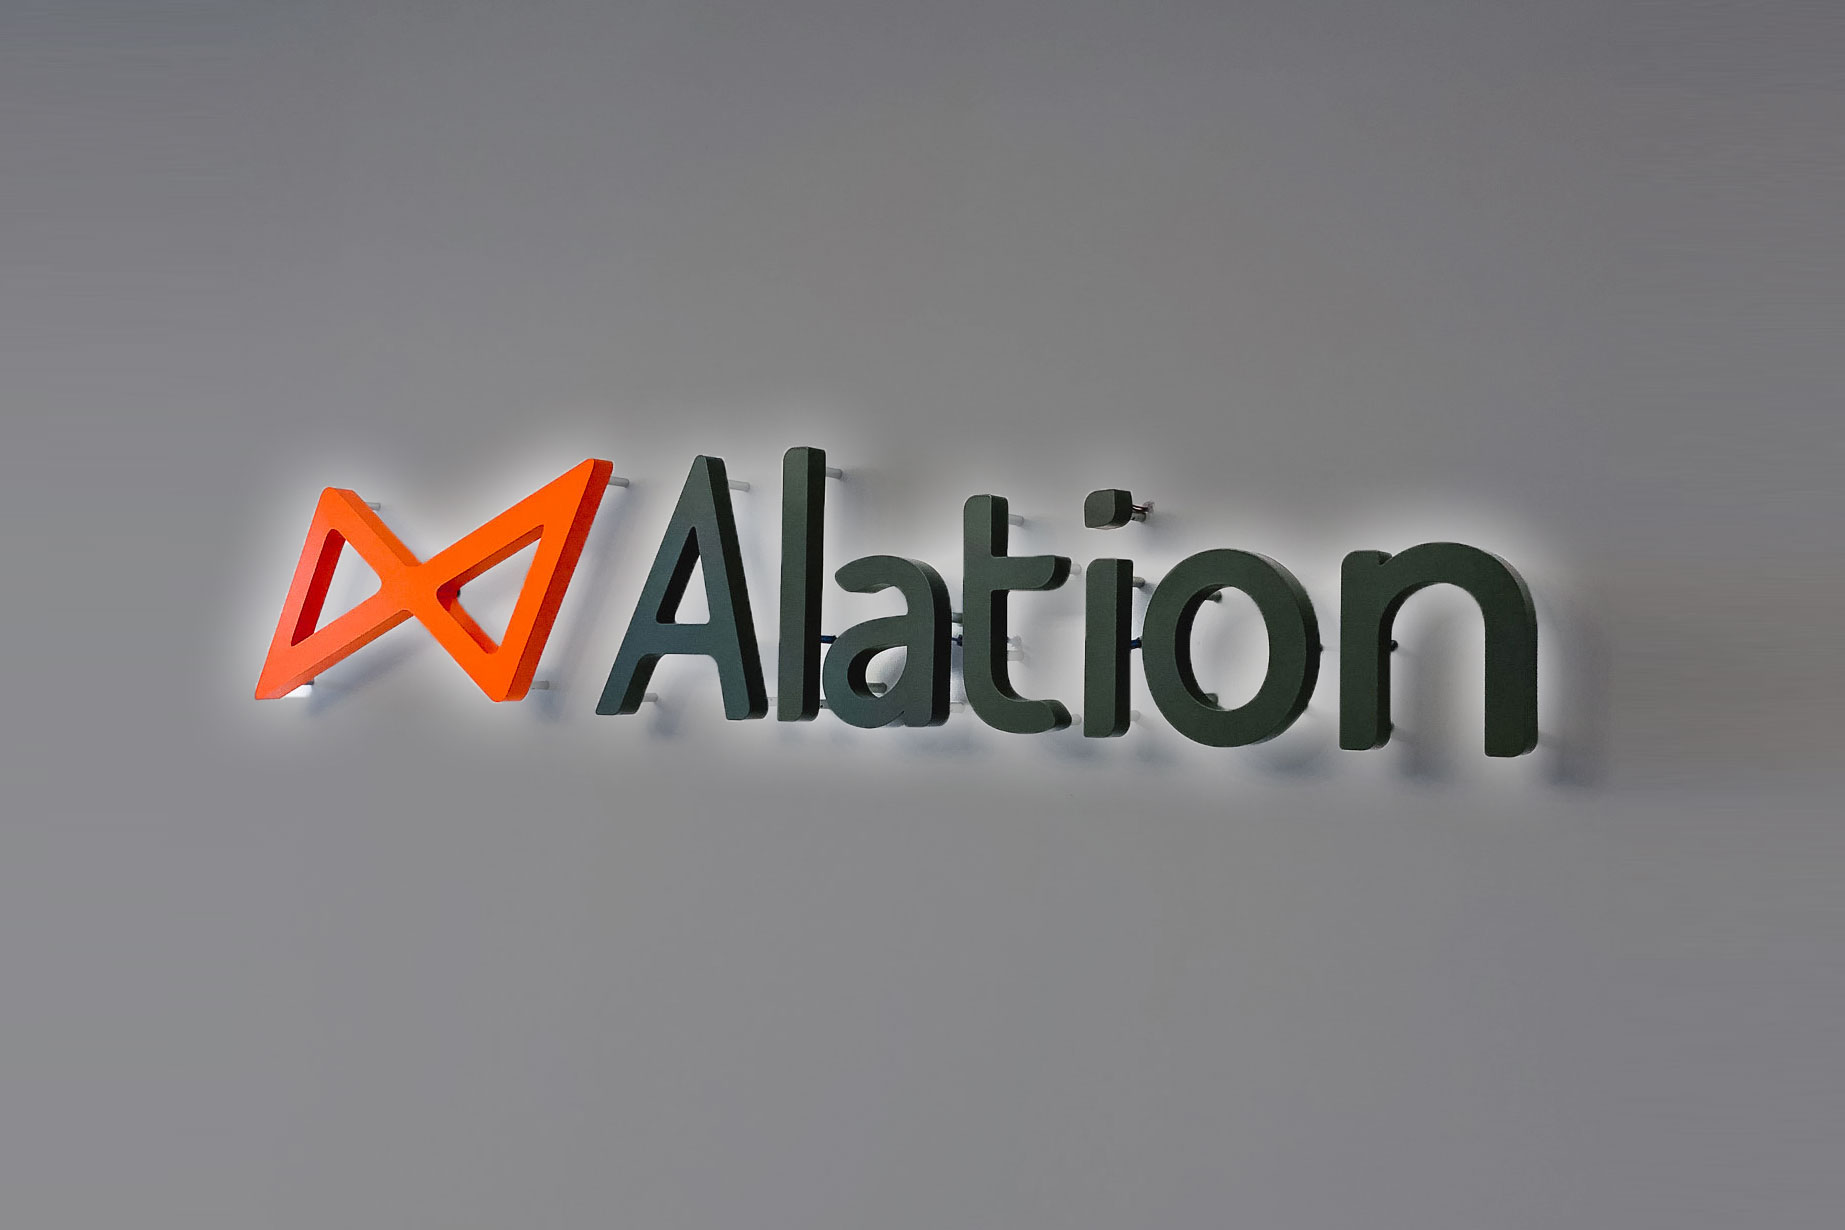 Illuminated black and orange lobby sign on color blocked wall for Alation, a data catalog company based in Redwood City, CA